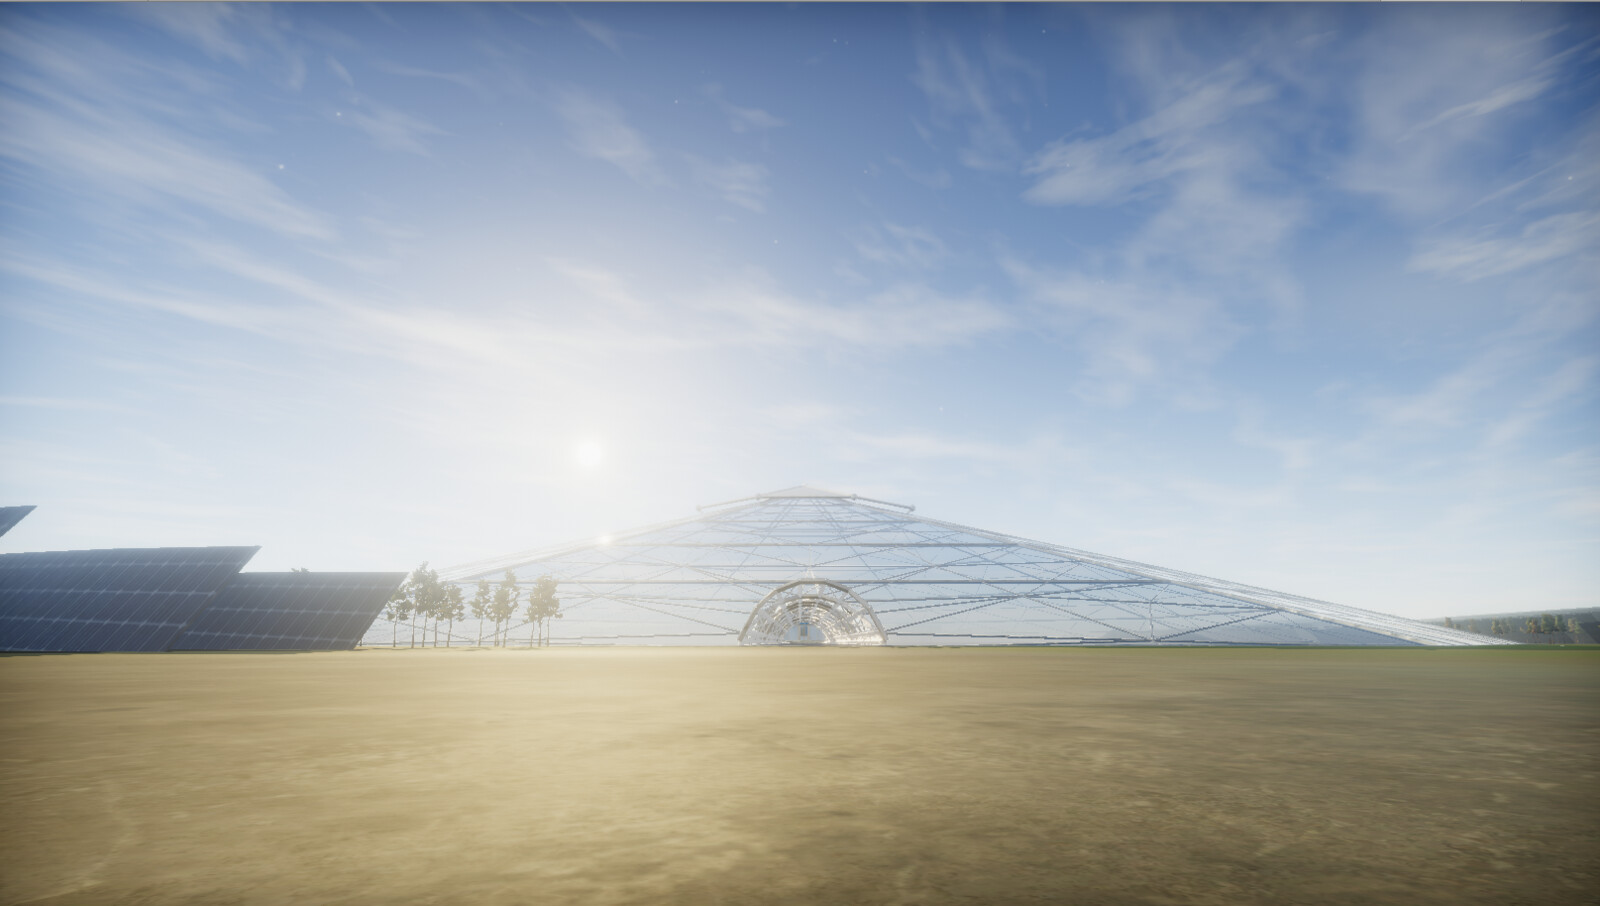 Perspective of the outside of the dome and entrance to the mine - Unity screenshot.